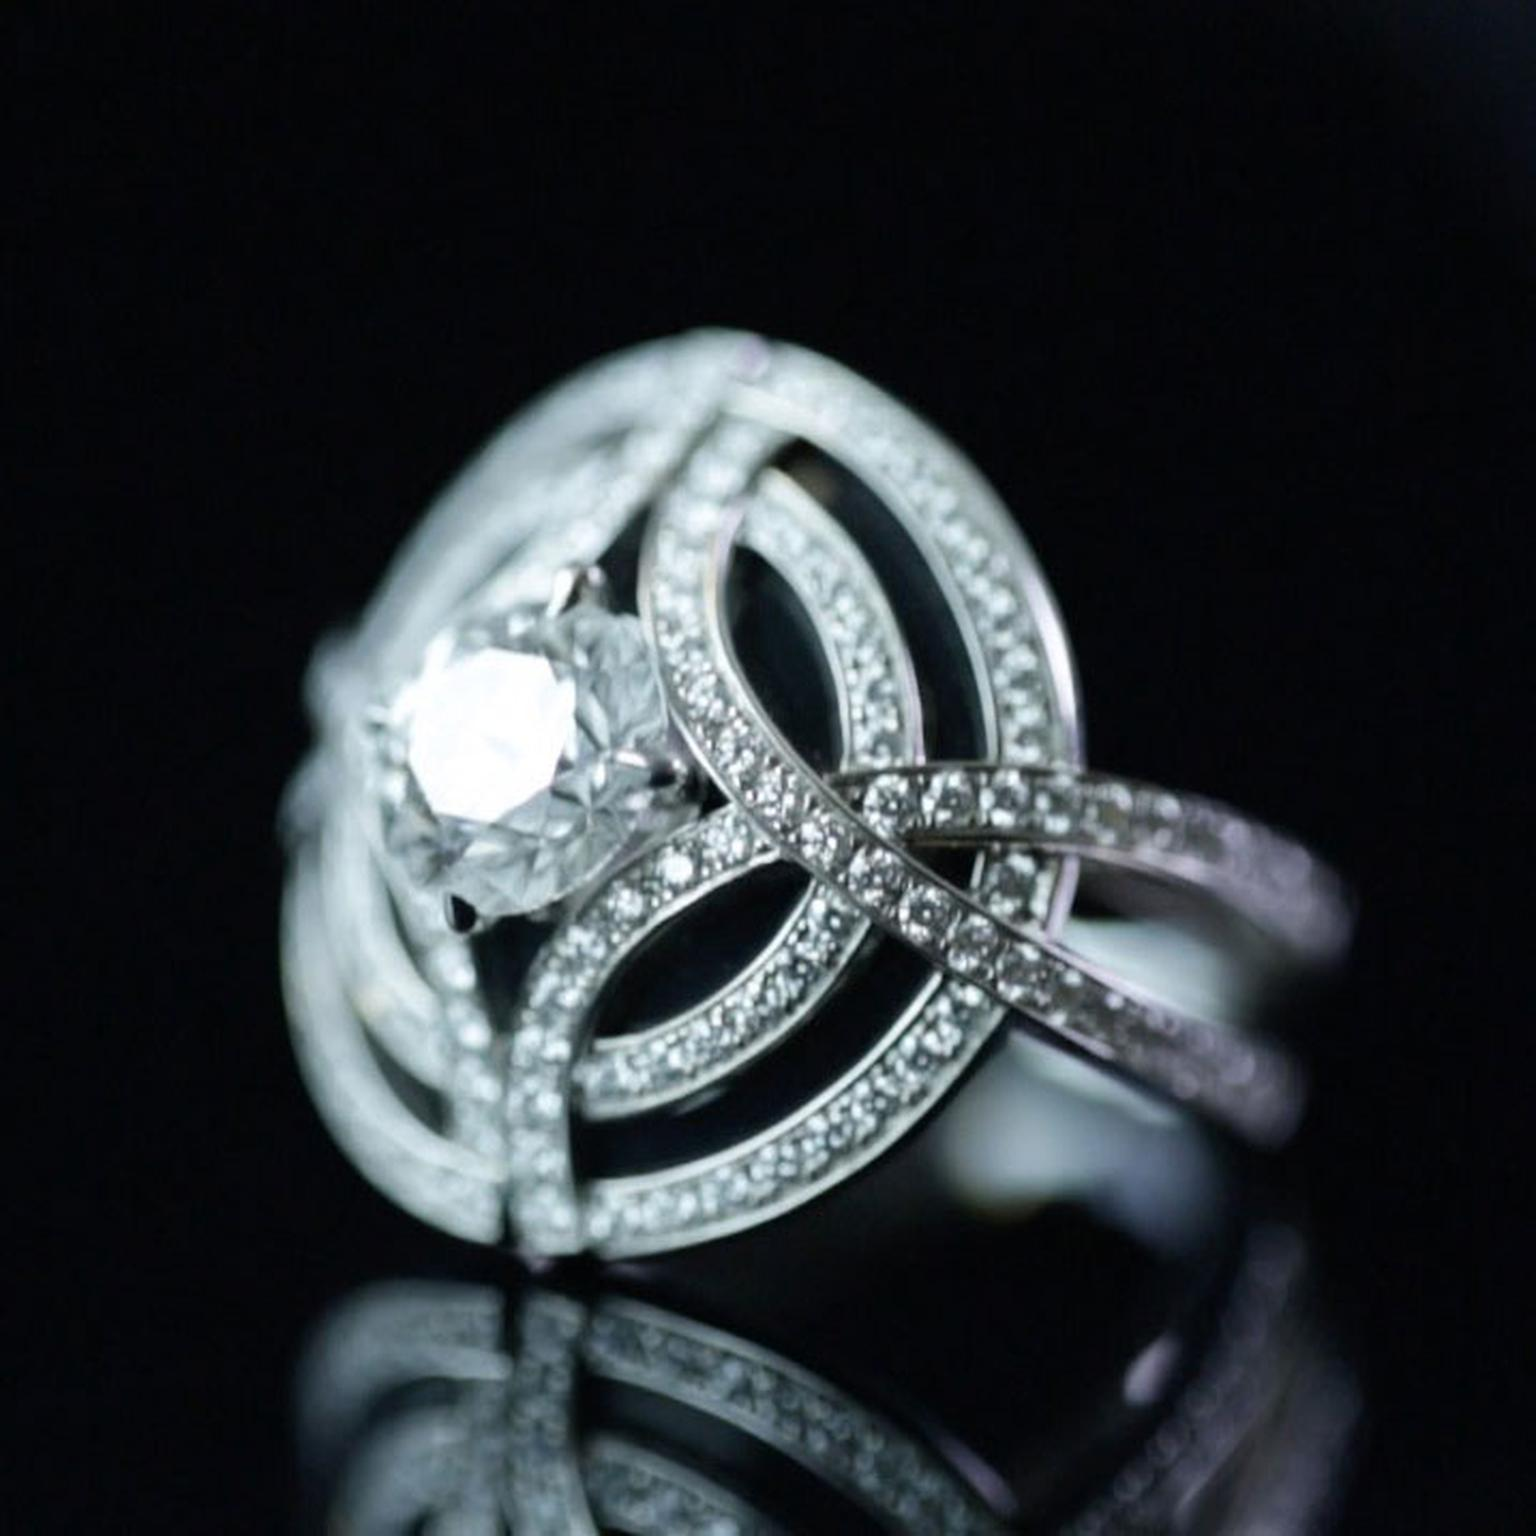 Cartier Galanterie diamond ring